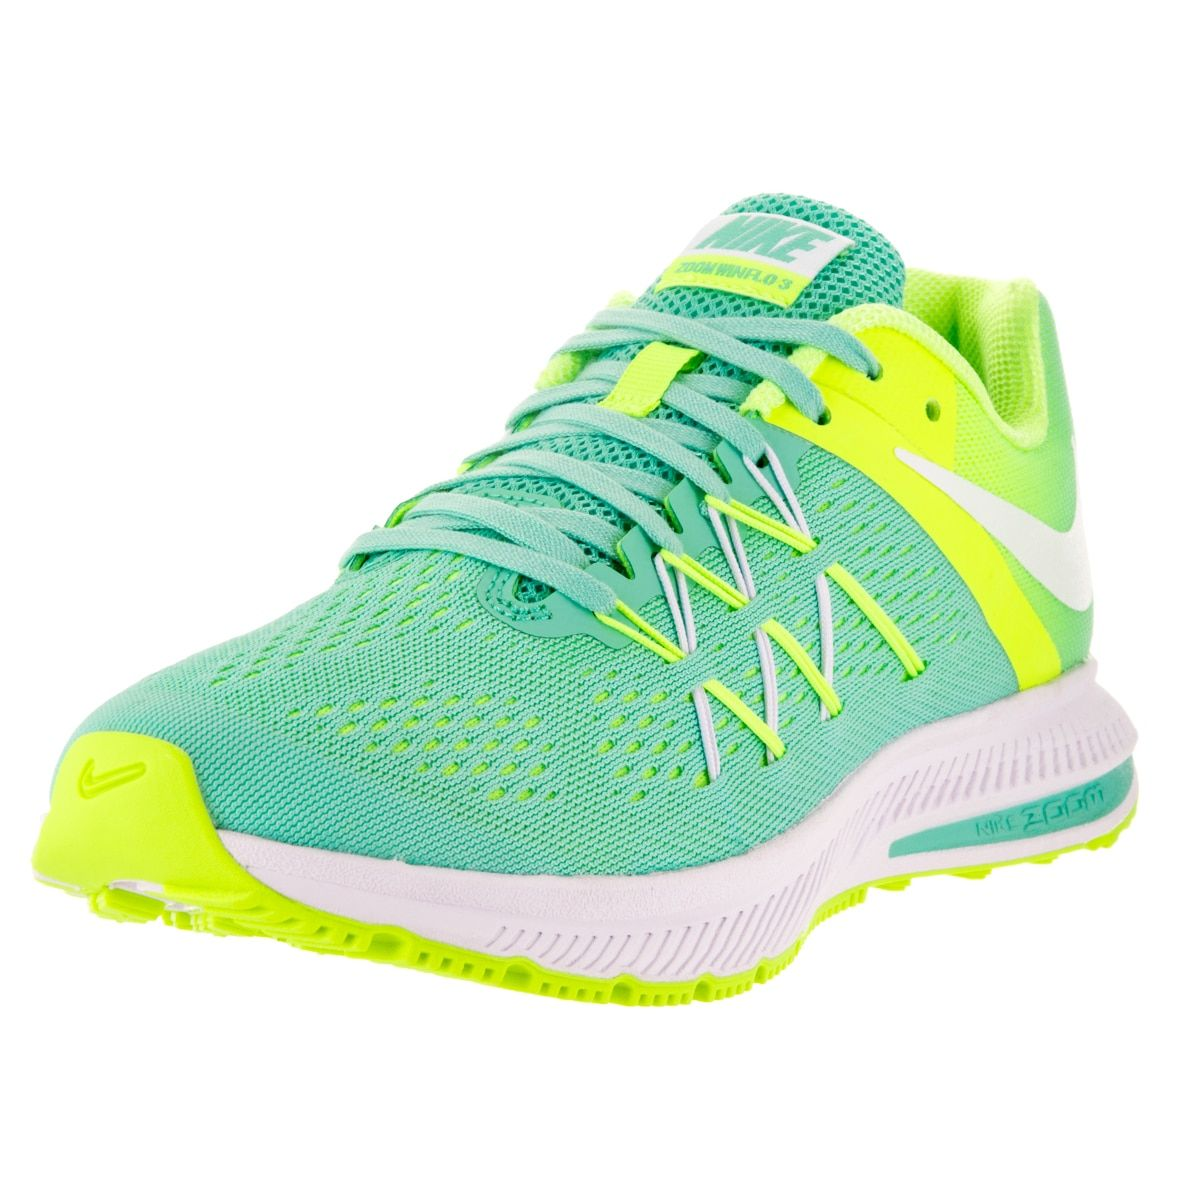 the best attitude 61dd7 80a91 ... nike womens zoom winflo 3 hyper turquoise volt and white plastic  running shoes . ...